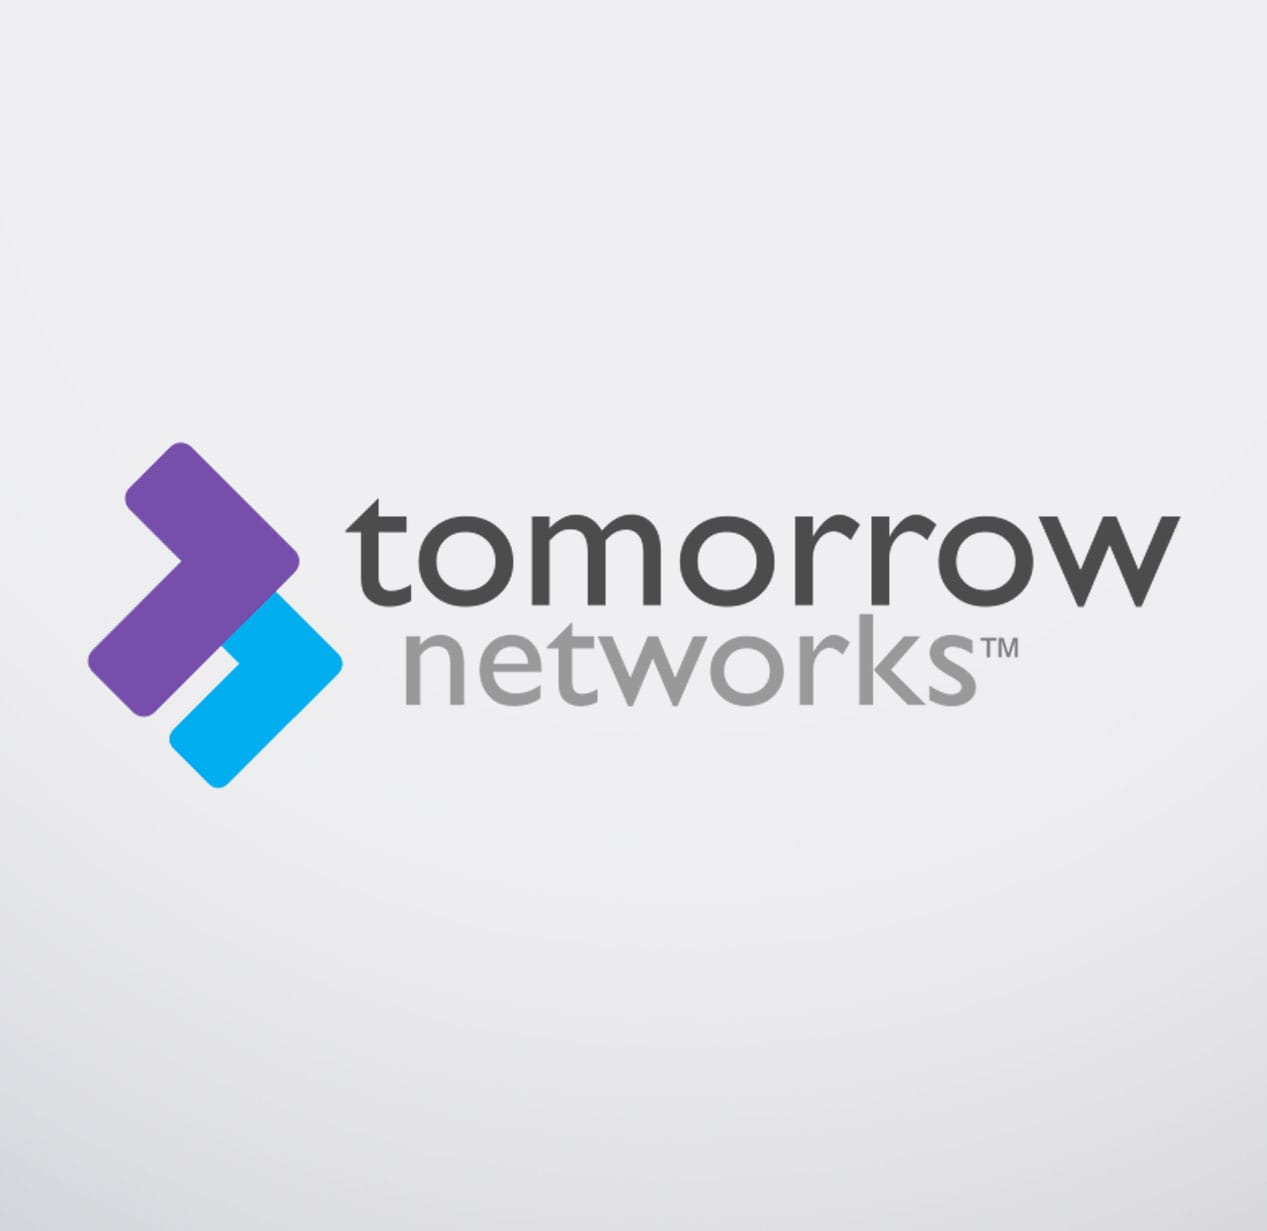 Tomorrow Networks Website